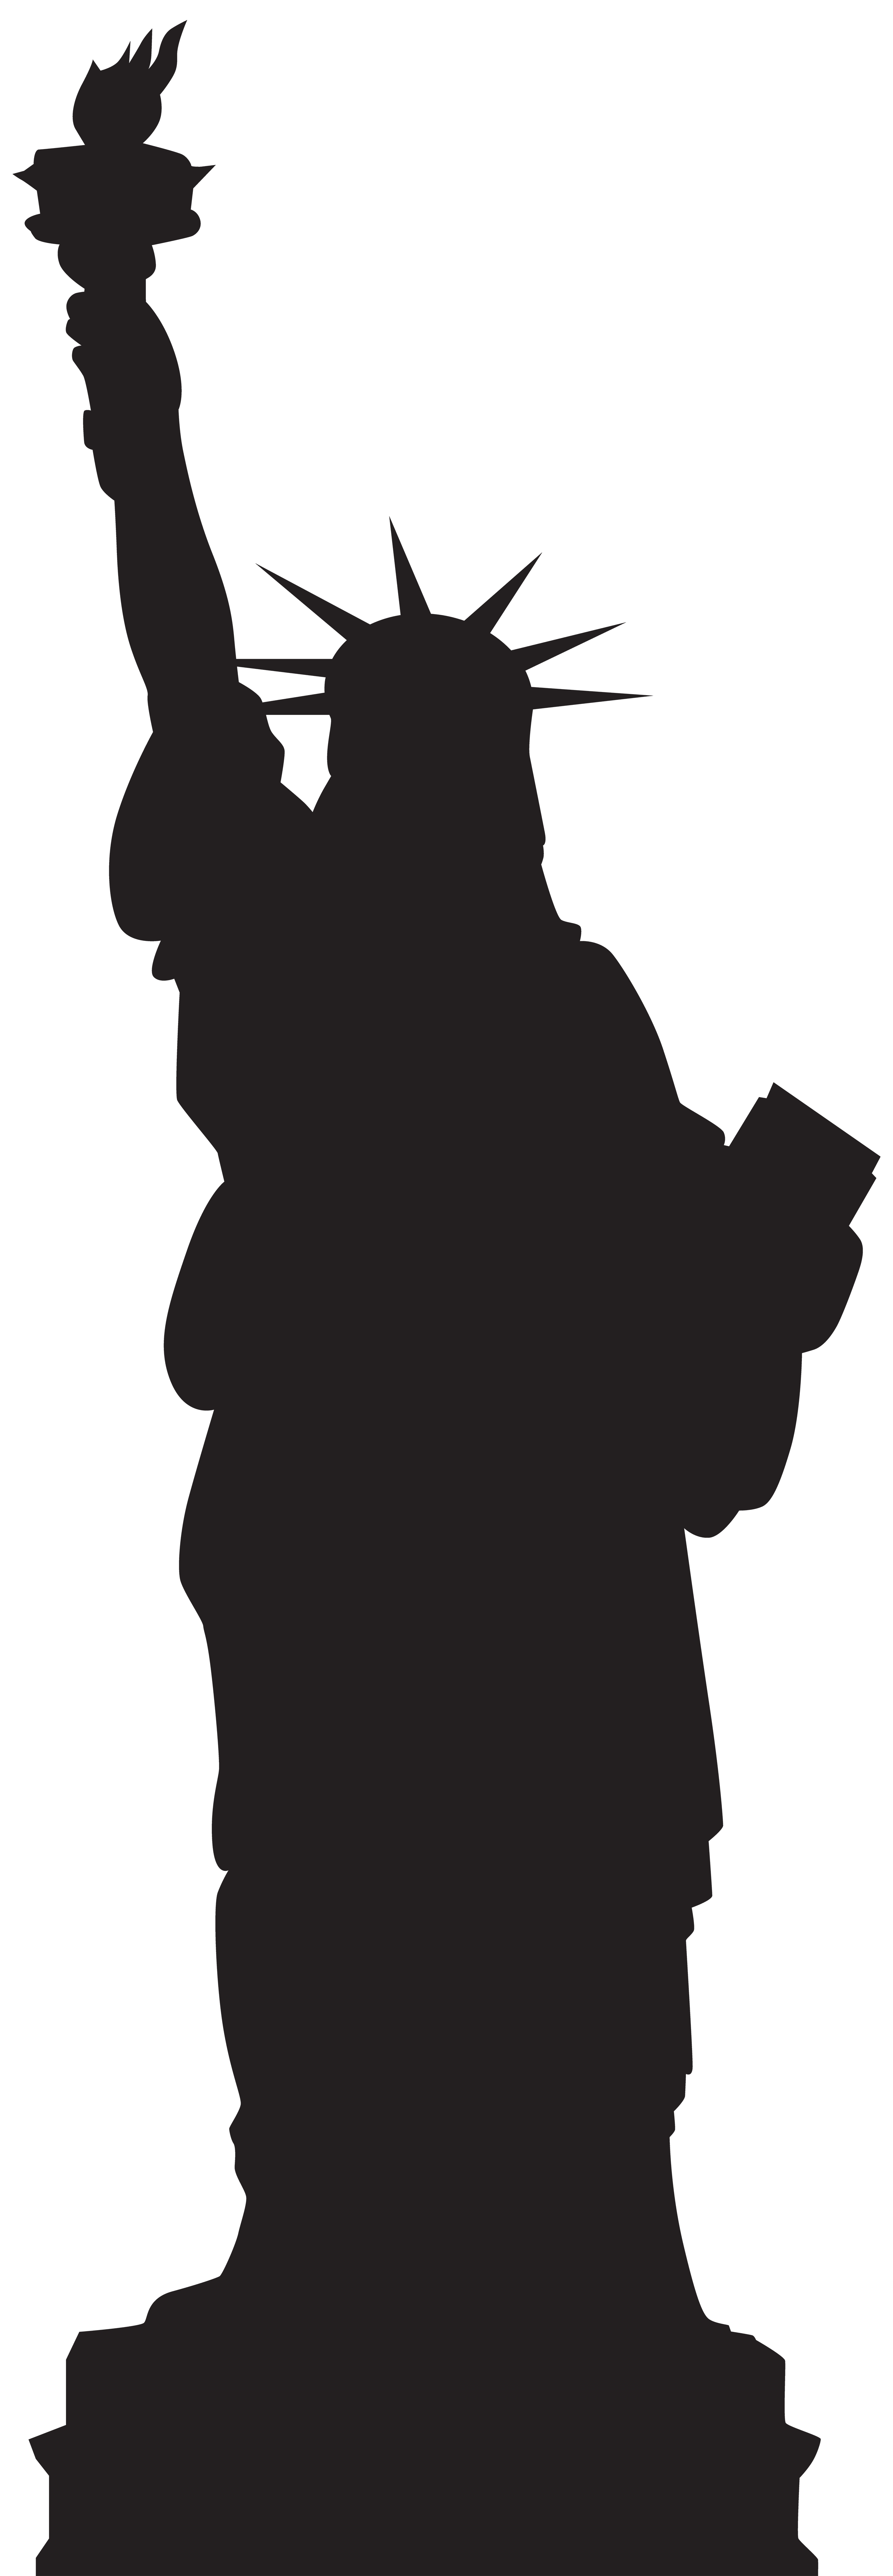 Statue silhouette png